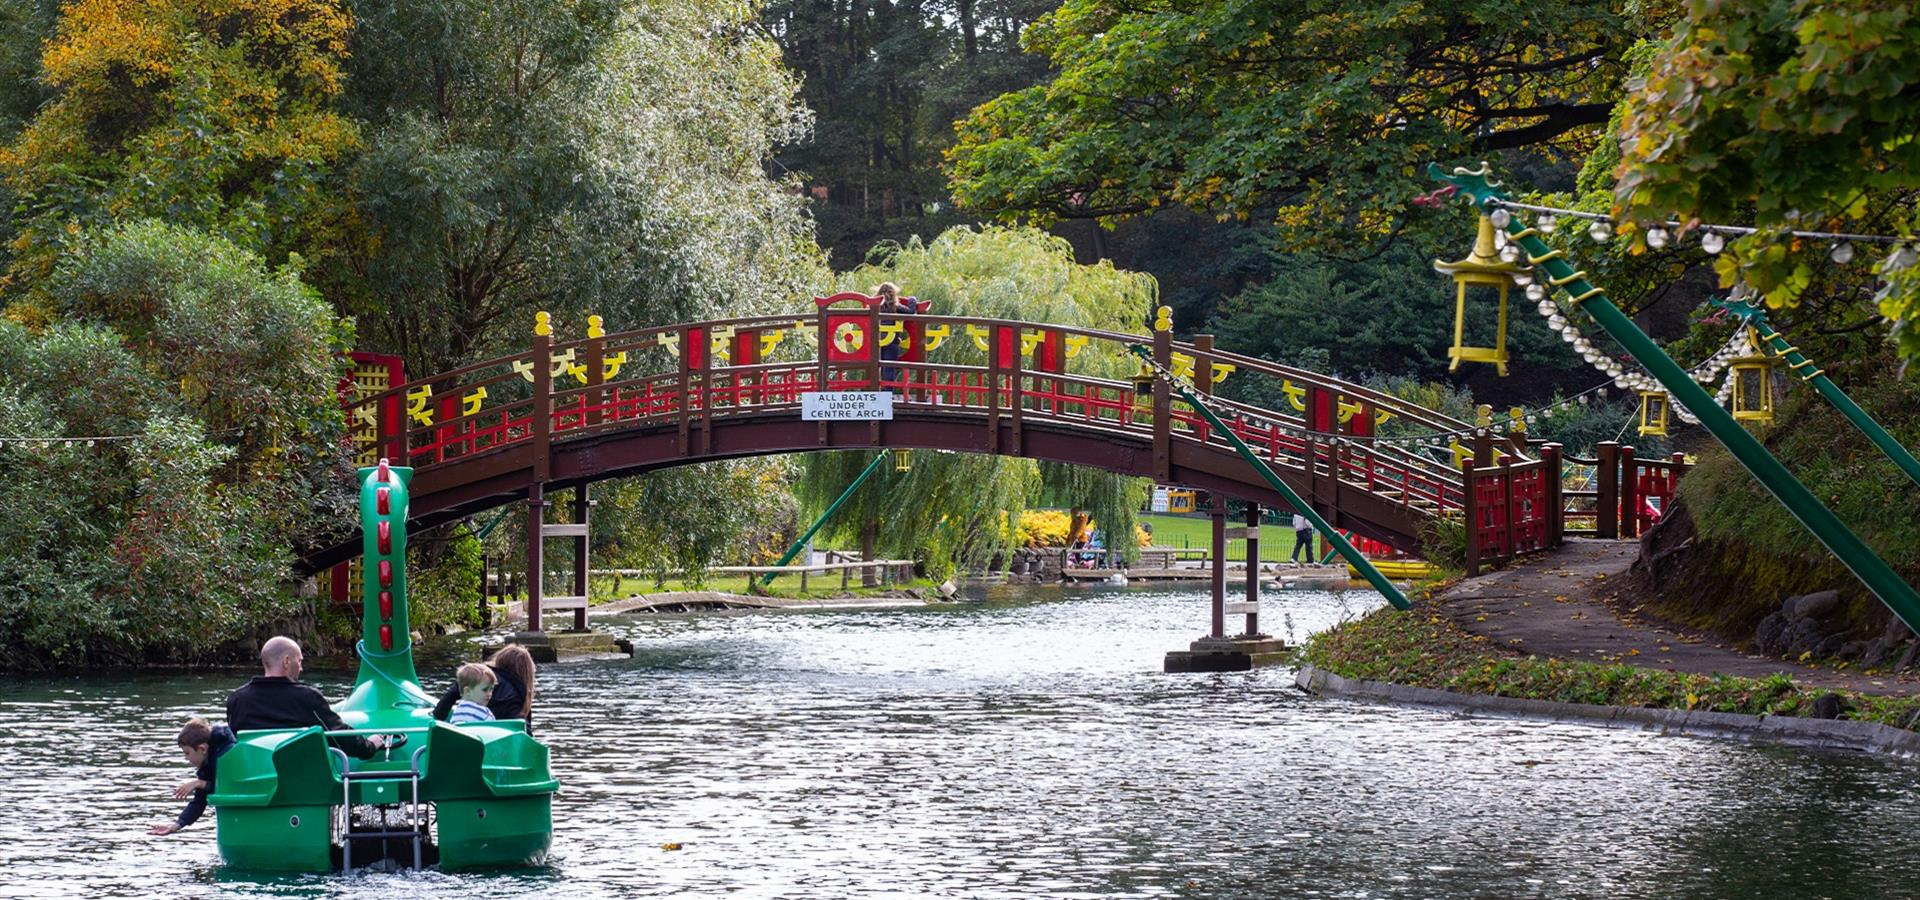 An image of Peasholm Park, Scarborough by Ravage Productions